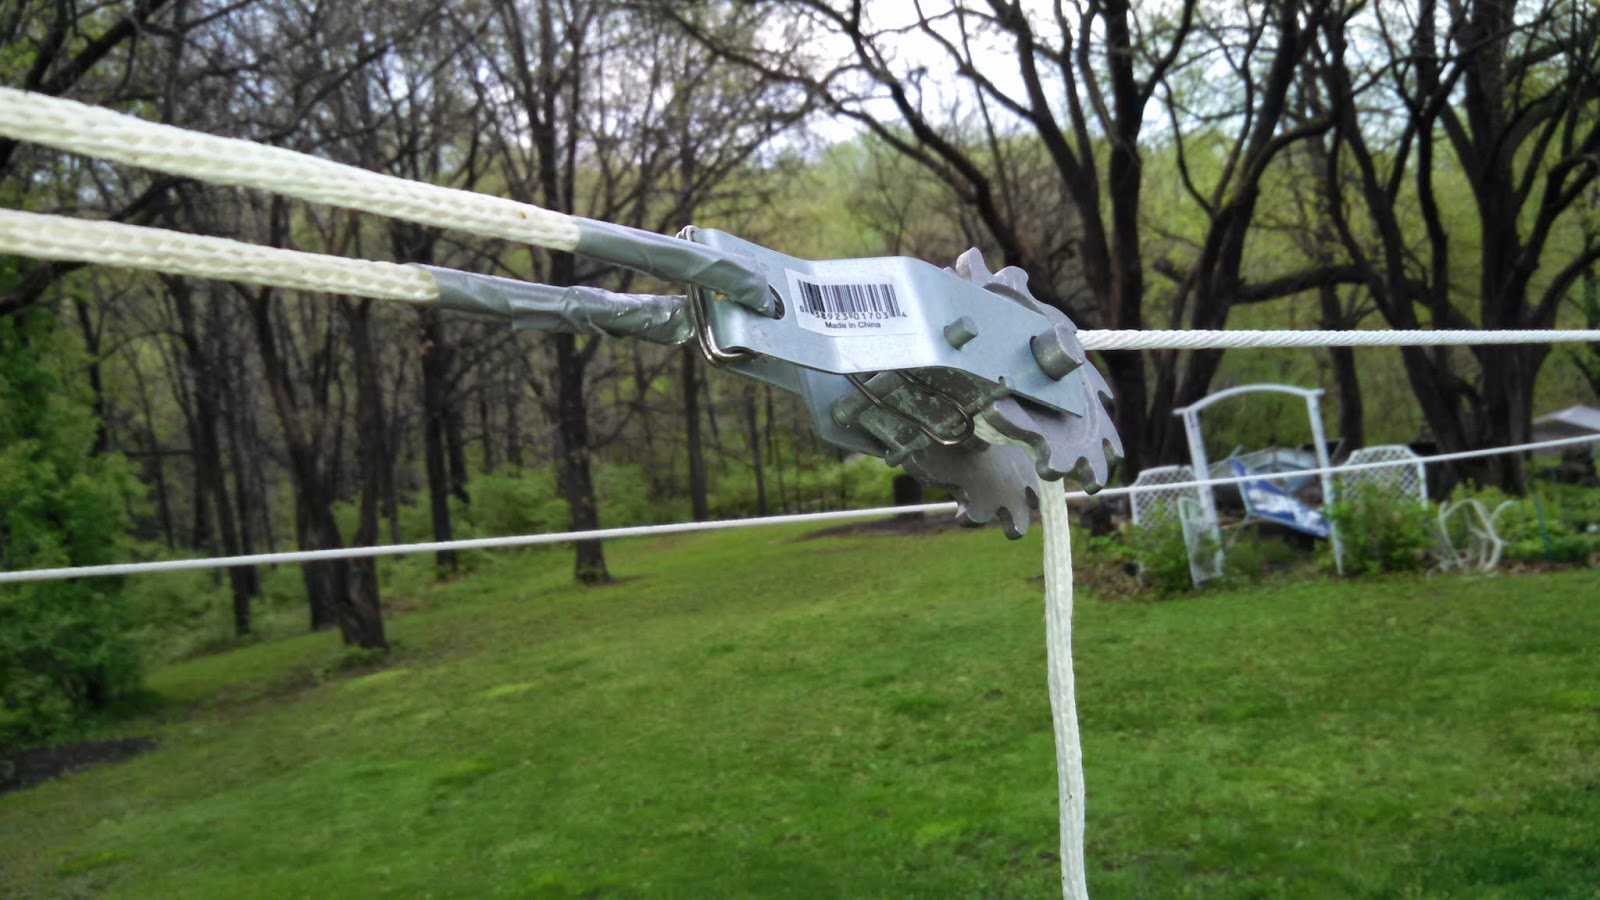 Ratchet to Tighten Clothesline Protected with Duct Tape